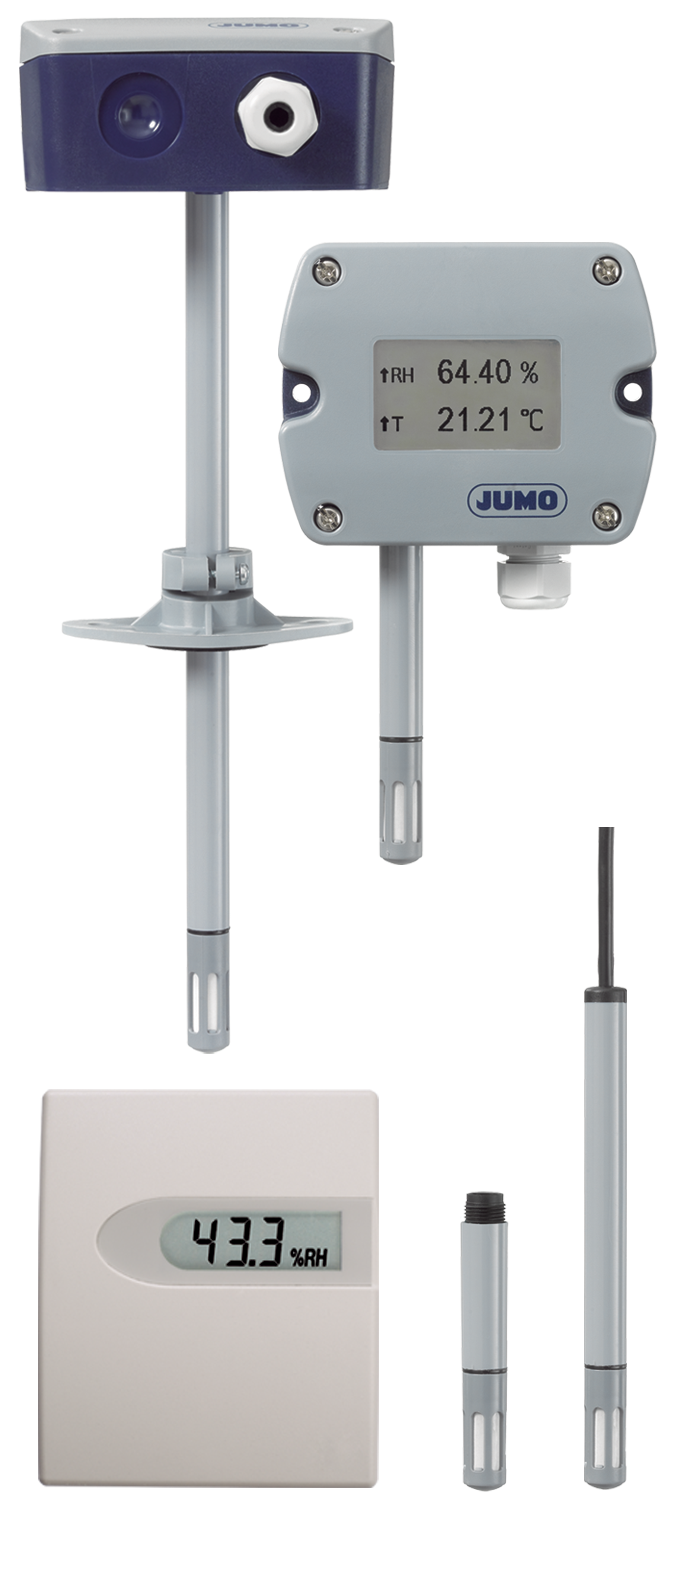 Hygro transducer, hygrothermal transducer, and CO2 measuring probe